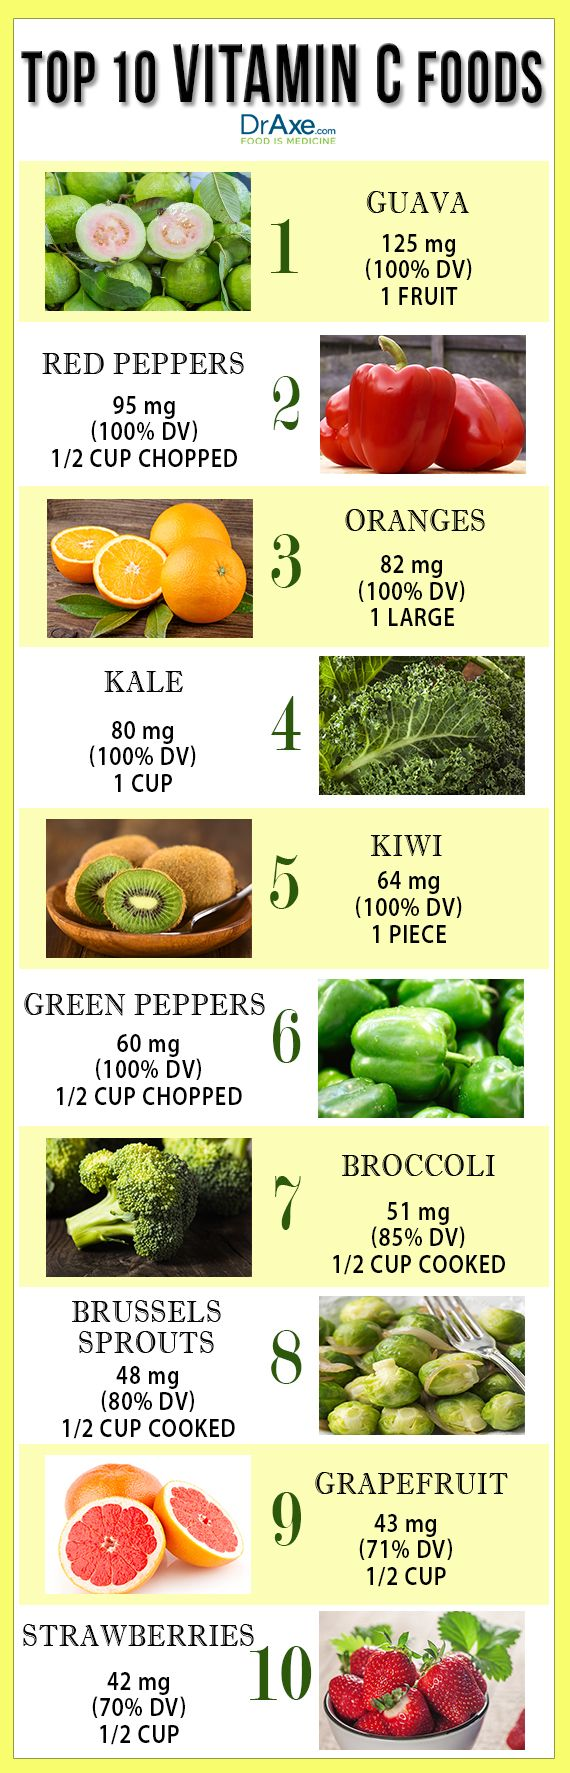 Top 10 Vitamin C Foods - DrAxe.com